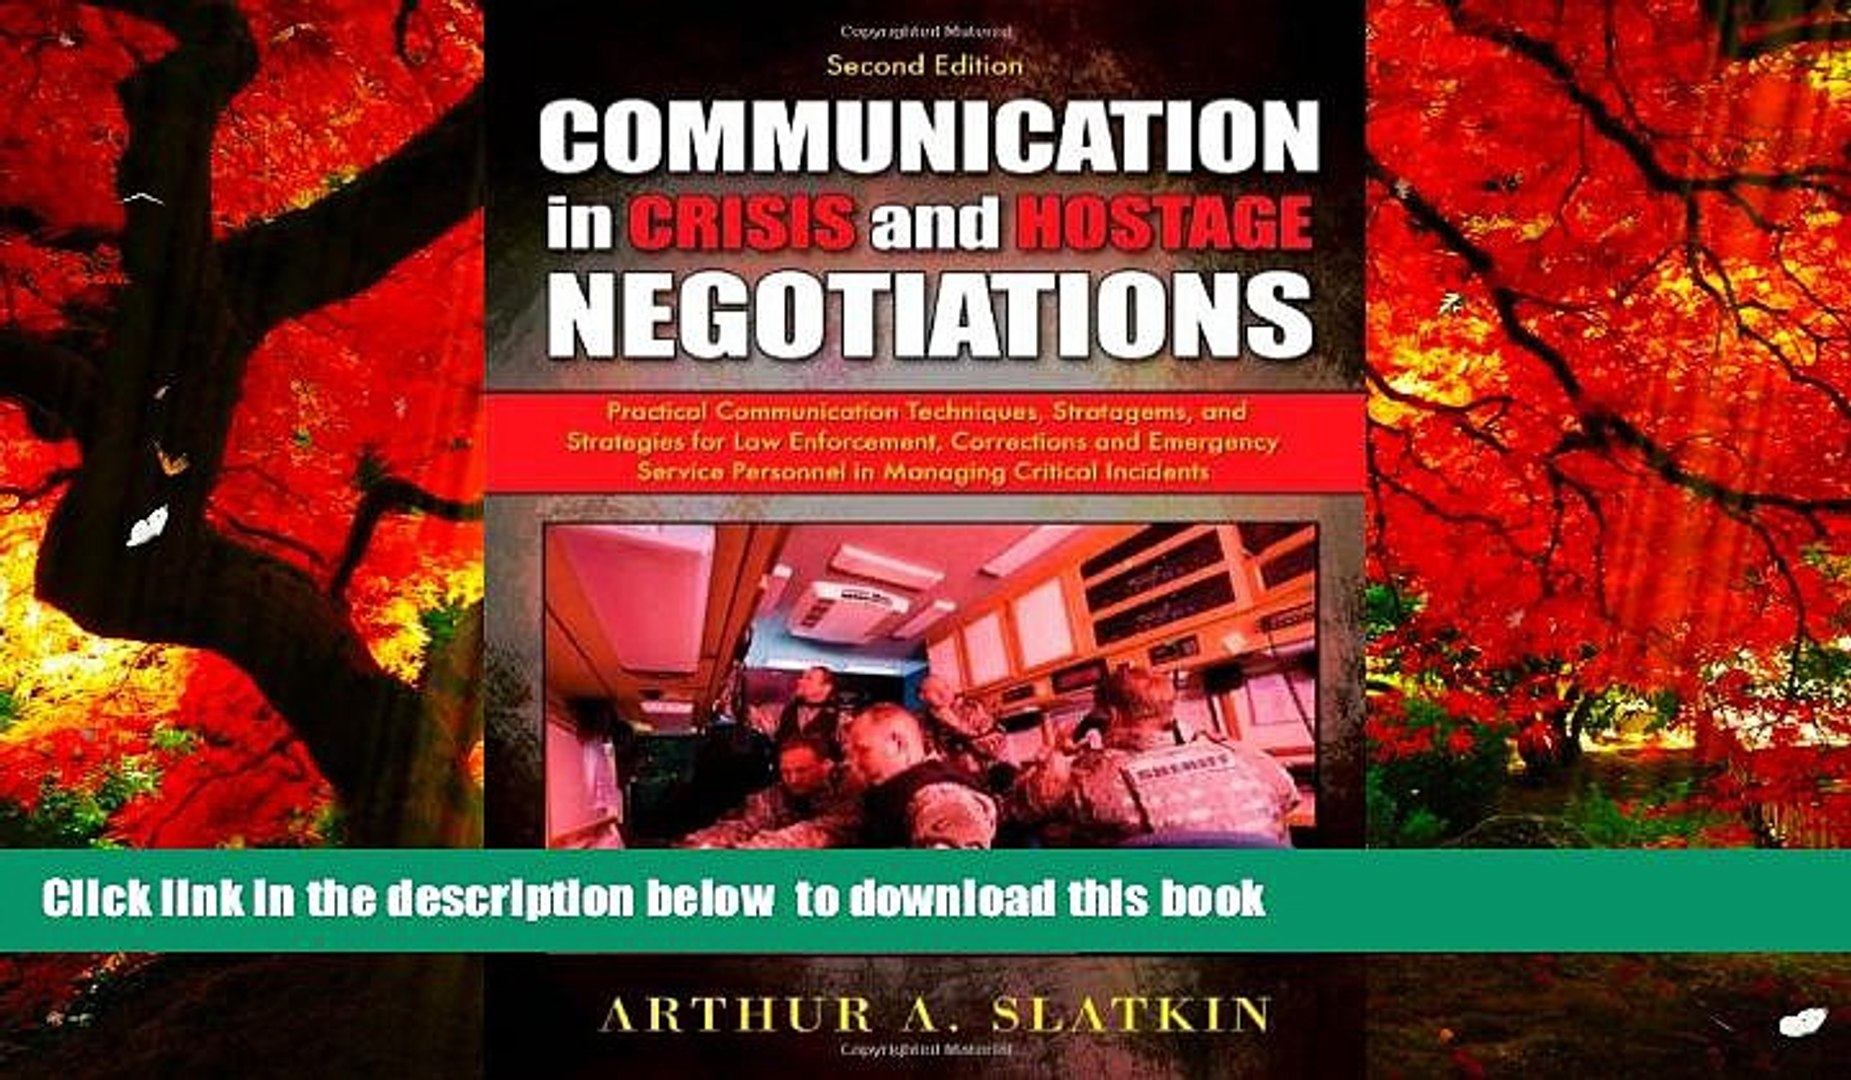 Stratagems and Strategies for Law Enforcement Communication in Crisis and Hostage Negotiations: Practical Communication Techniques Corrections and Emergency Service Personnel in Managing Critical Incidents